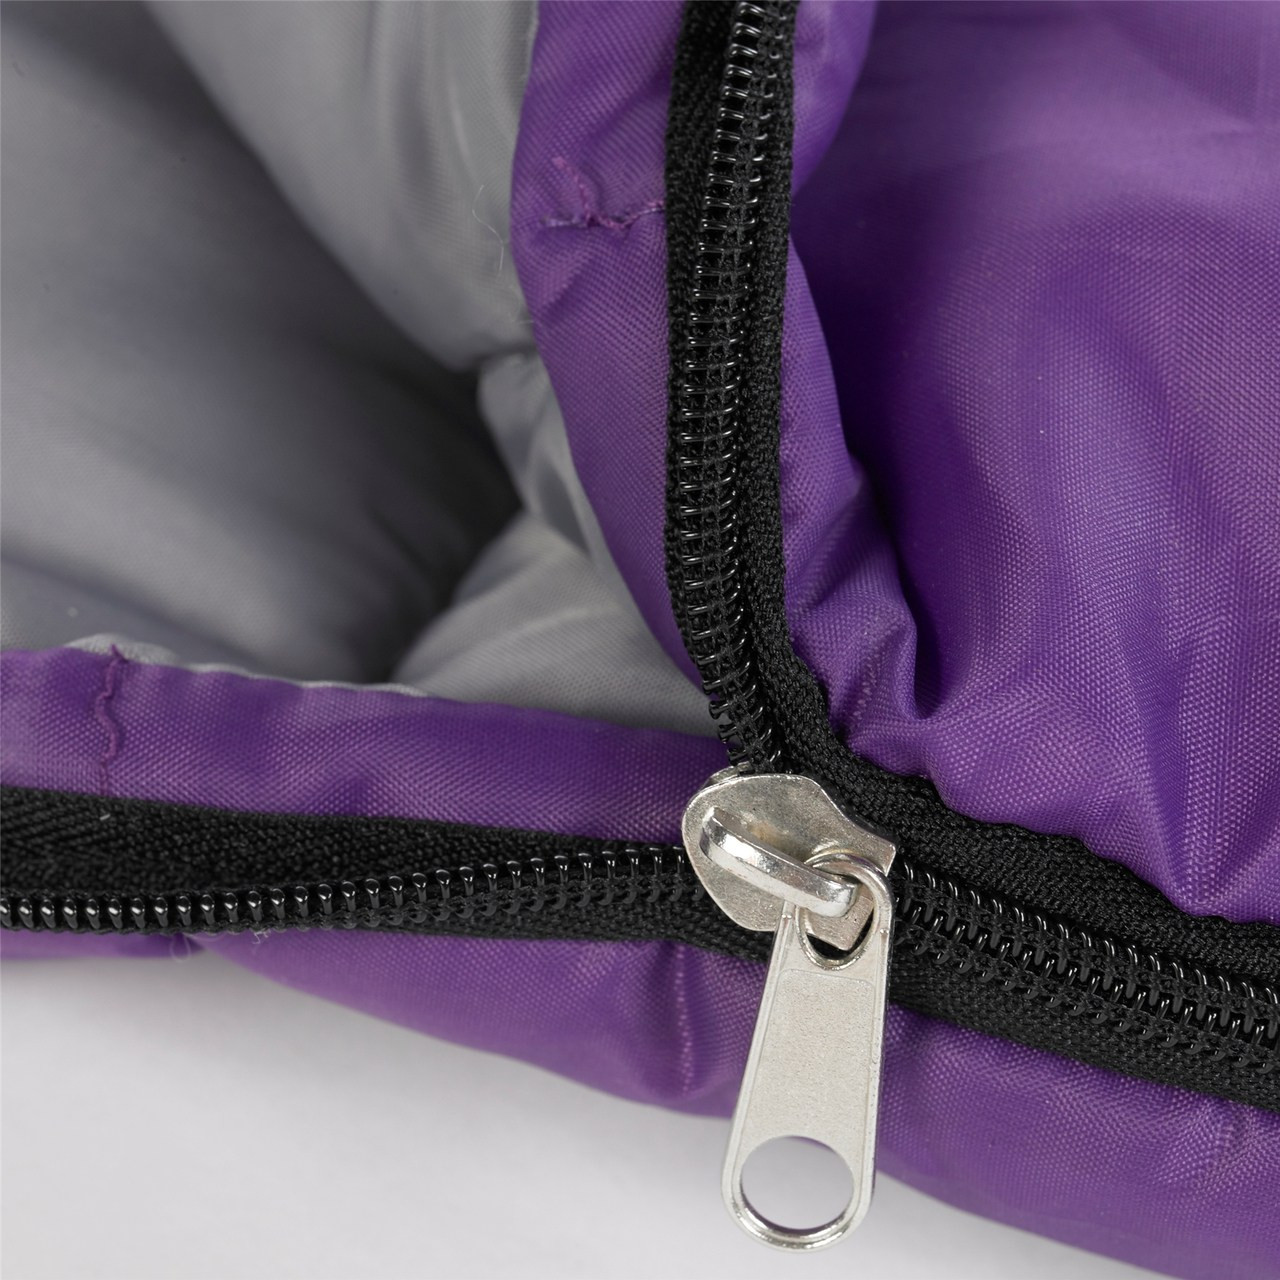 Close up view of the zipper partially unzipped on the Wenzel Kids Summer Camp 40 degree sleeping bag, purple